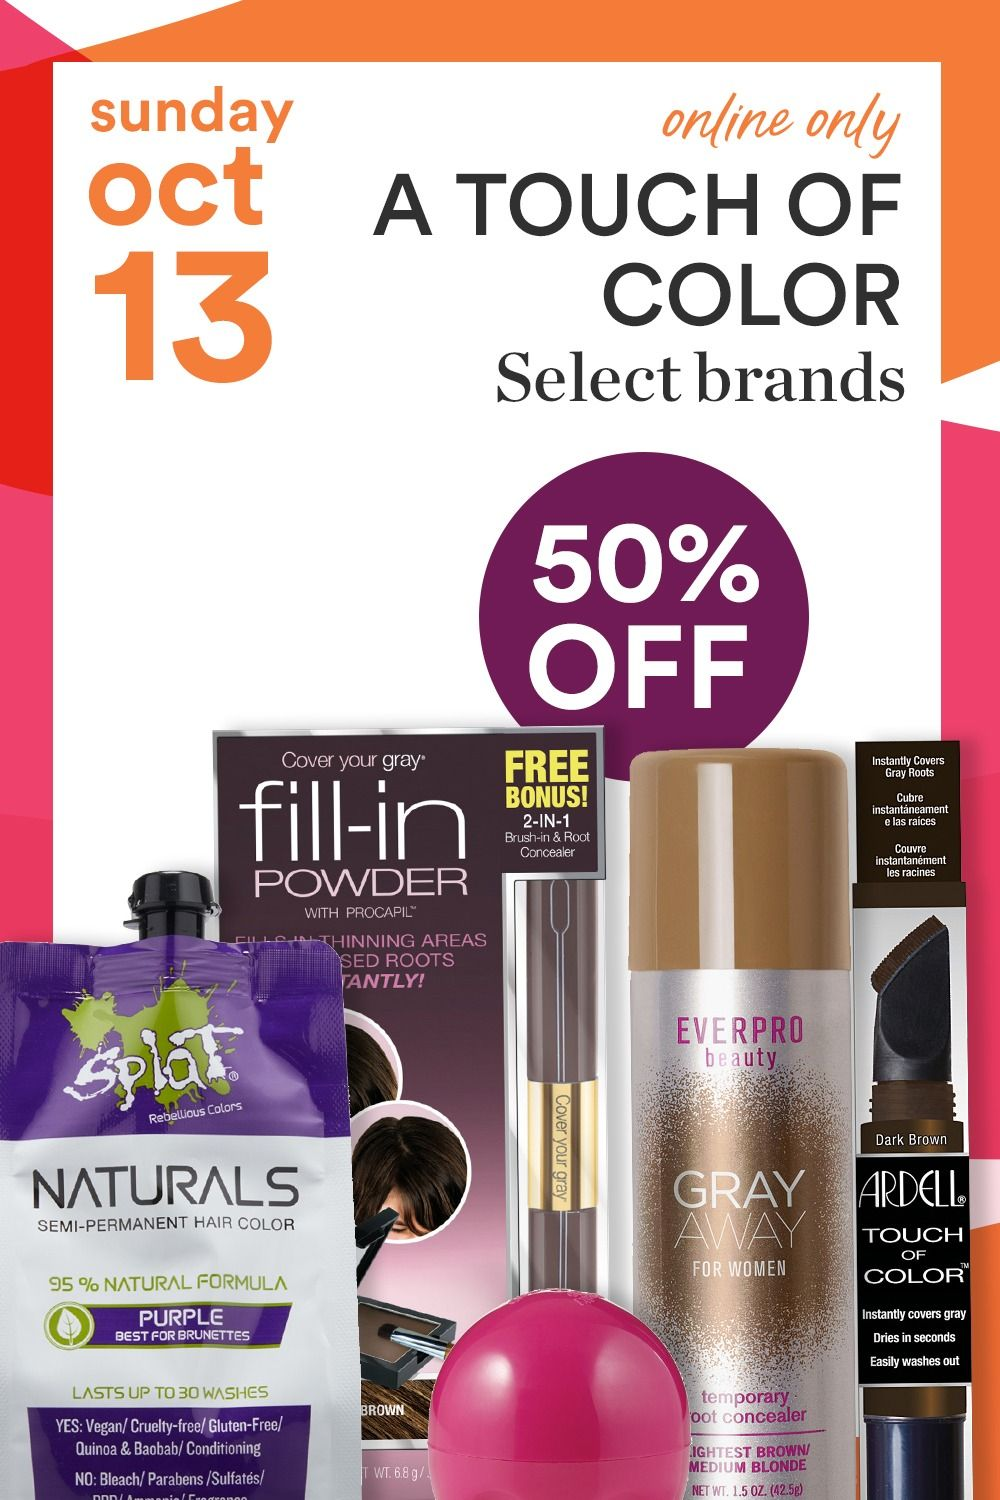 Shop these products for 50 off at an Ulta Beauty near you